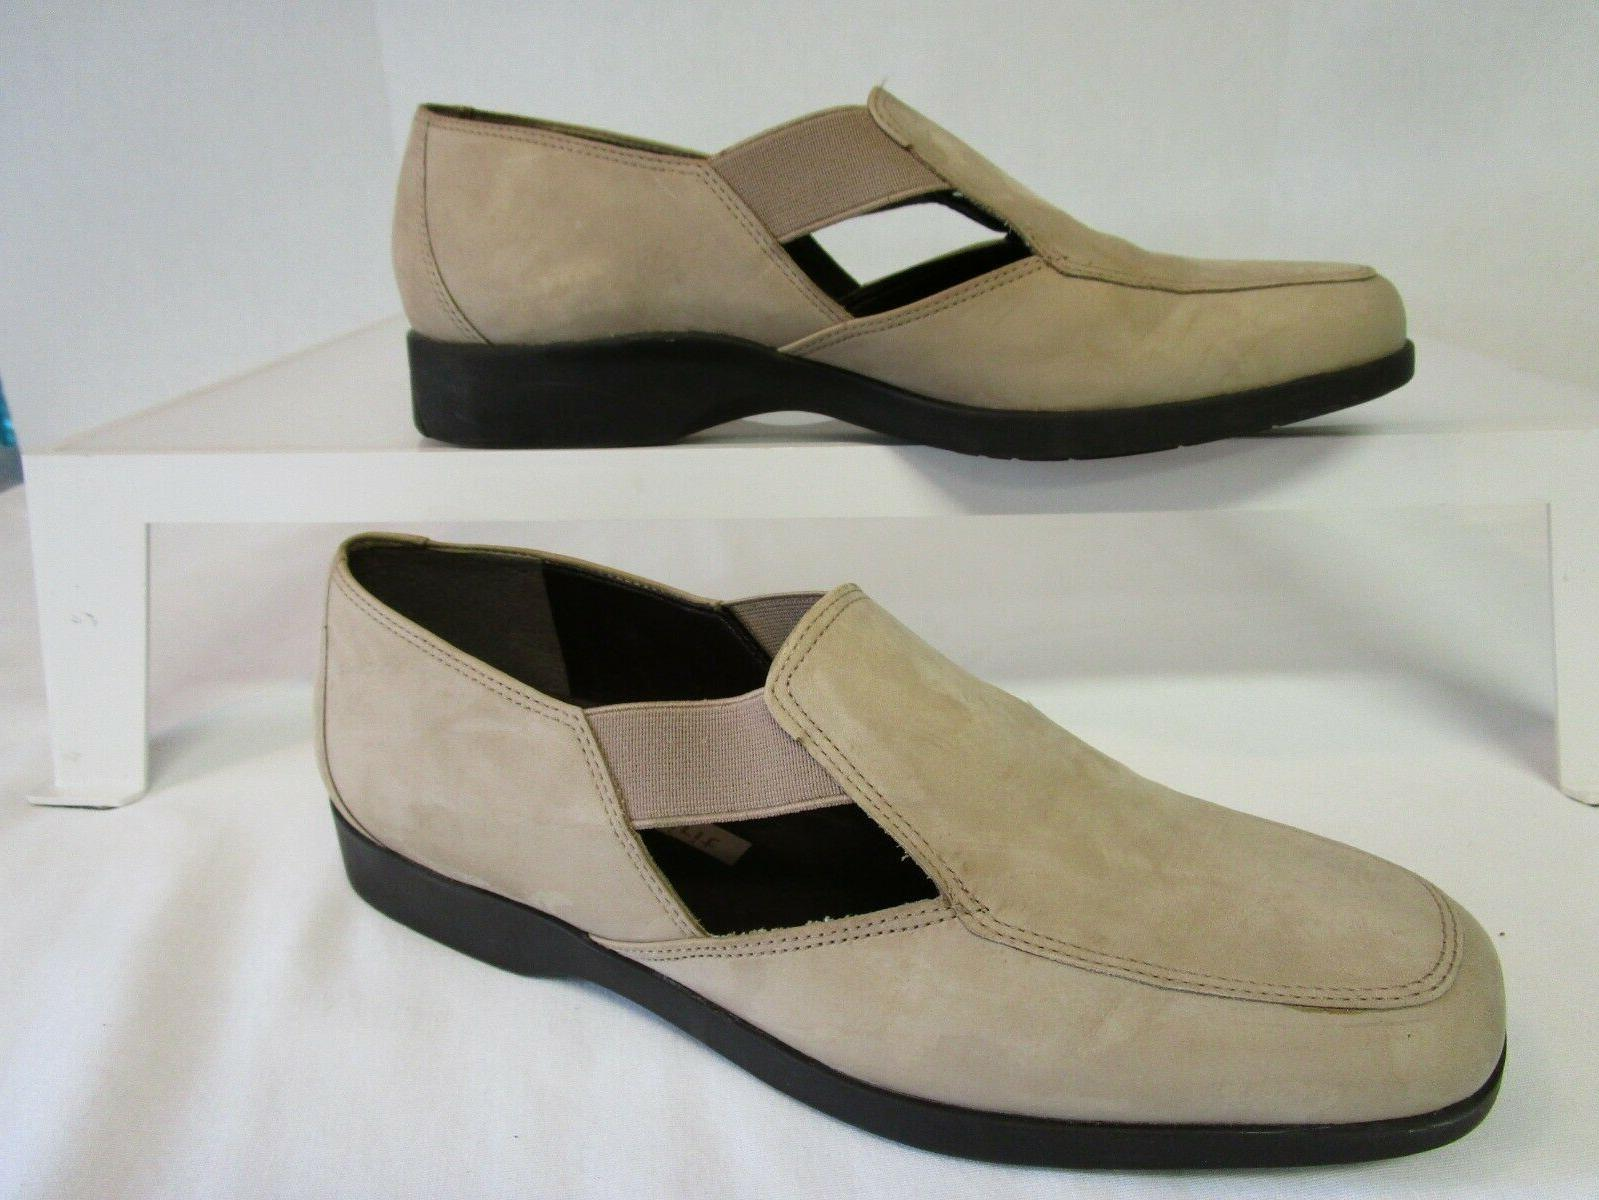 tan leather moccasins 8 5